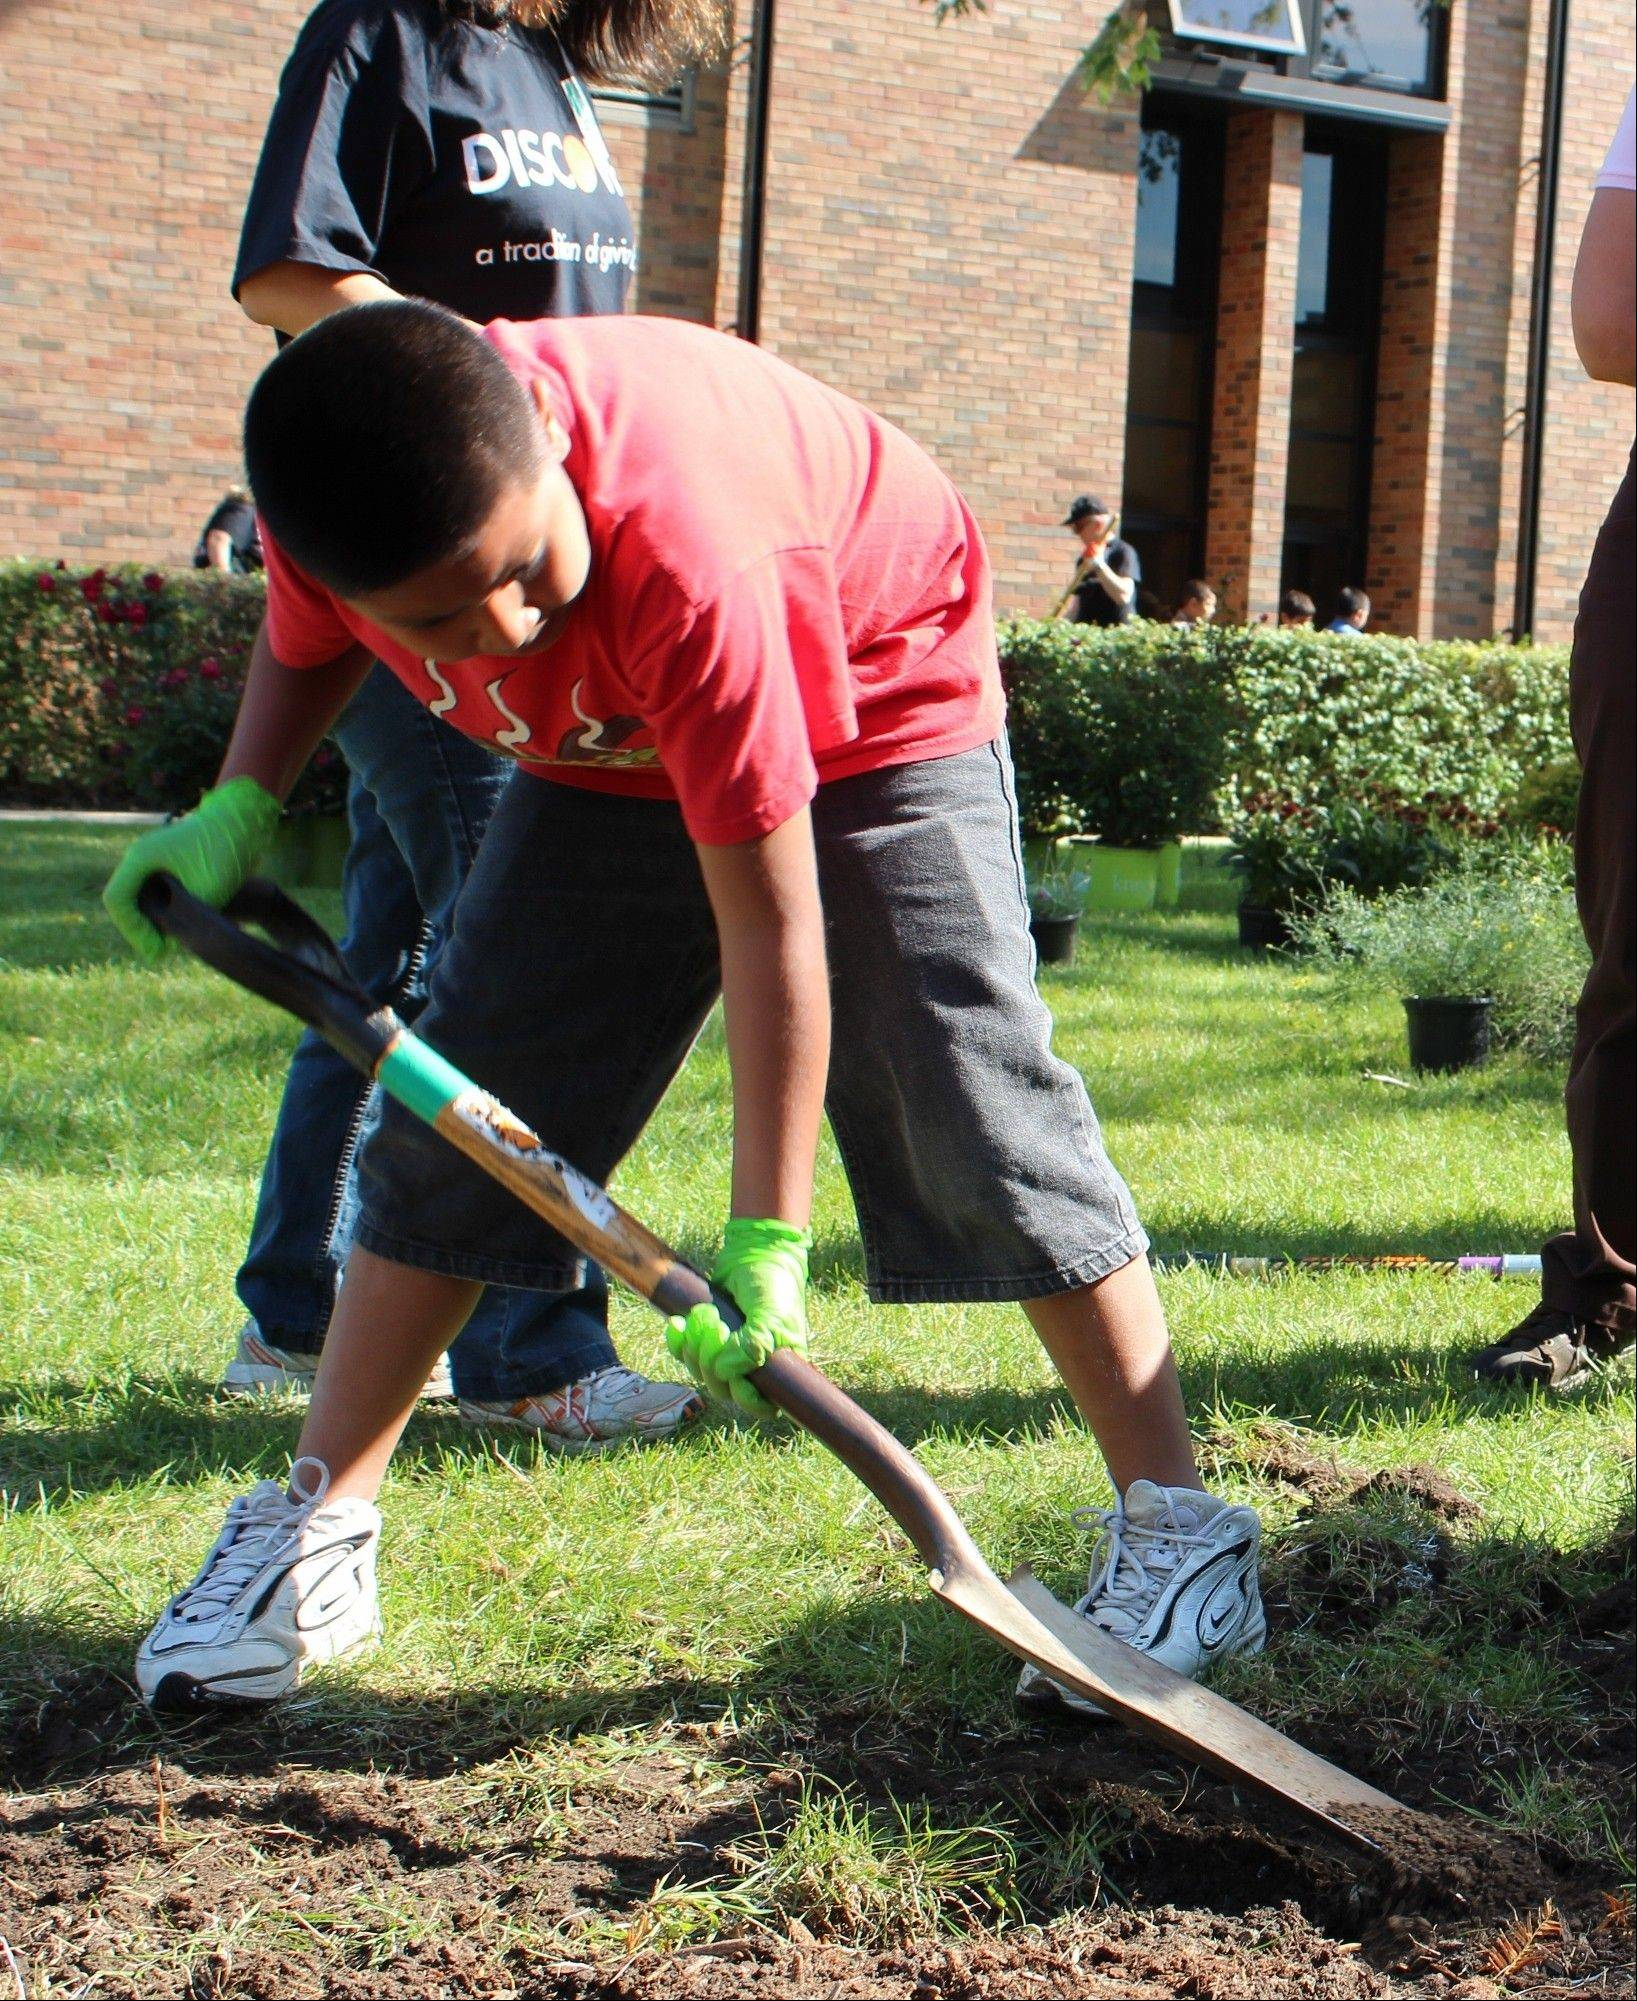 Christian O., a fifth-grader at Kilmer Elementary School, works to make space for a butterfly garden in front of the school on Friday, Sept. 27.